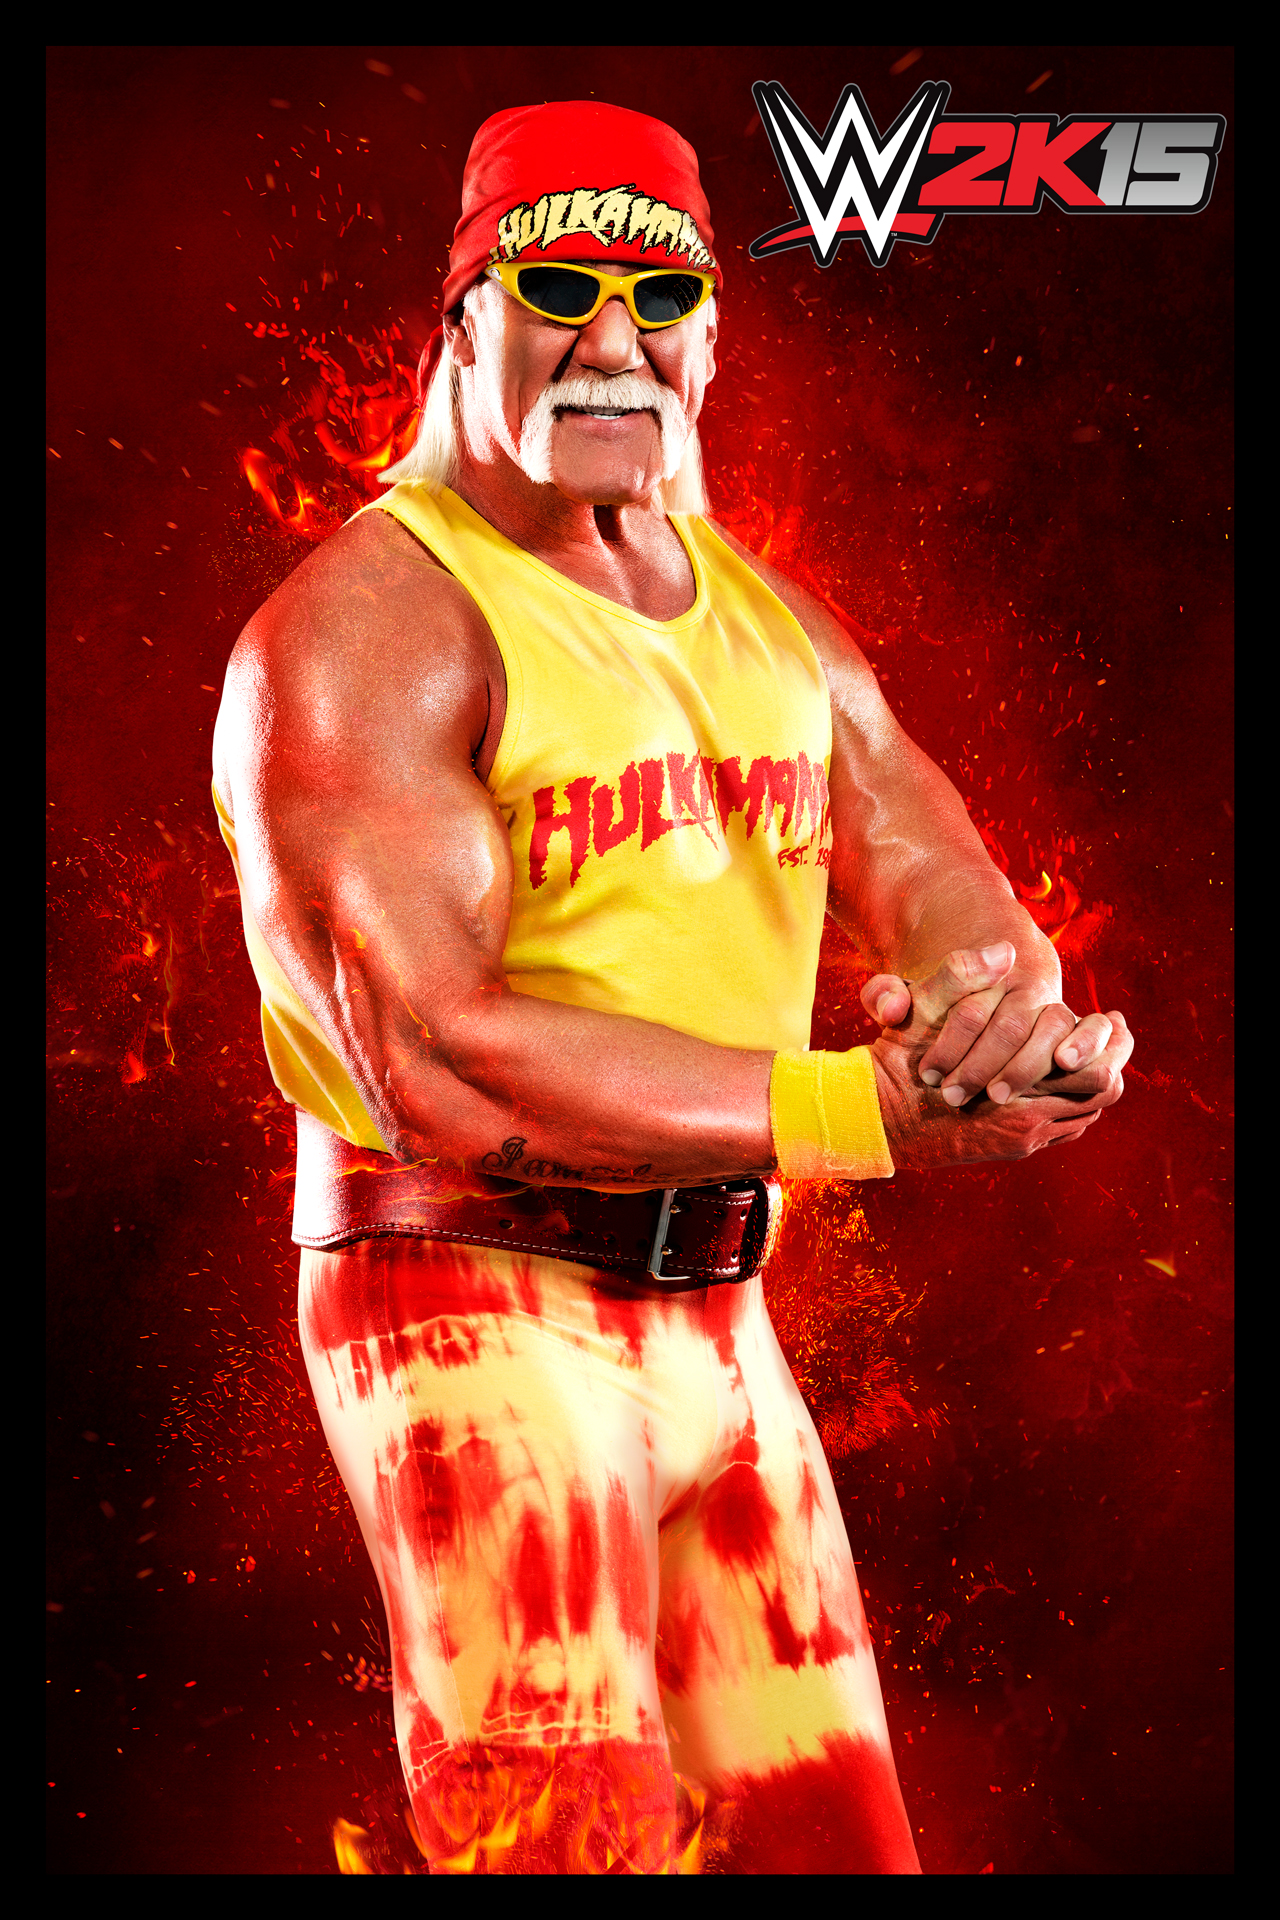 Wwe Hulk Hogan Hulkster Yanked From Wwe 2k16 39s Fight Card Erased From